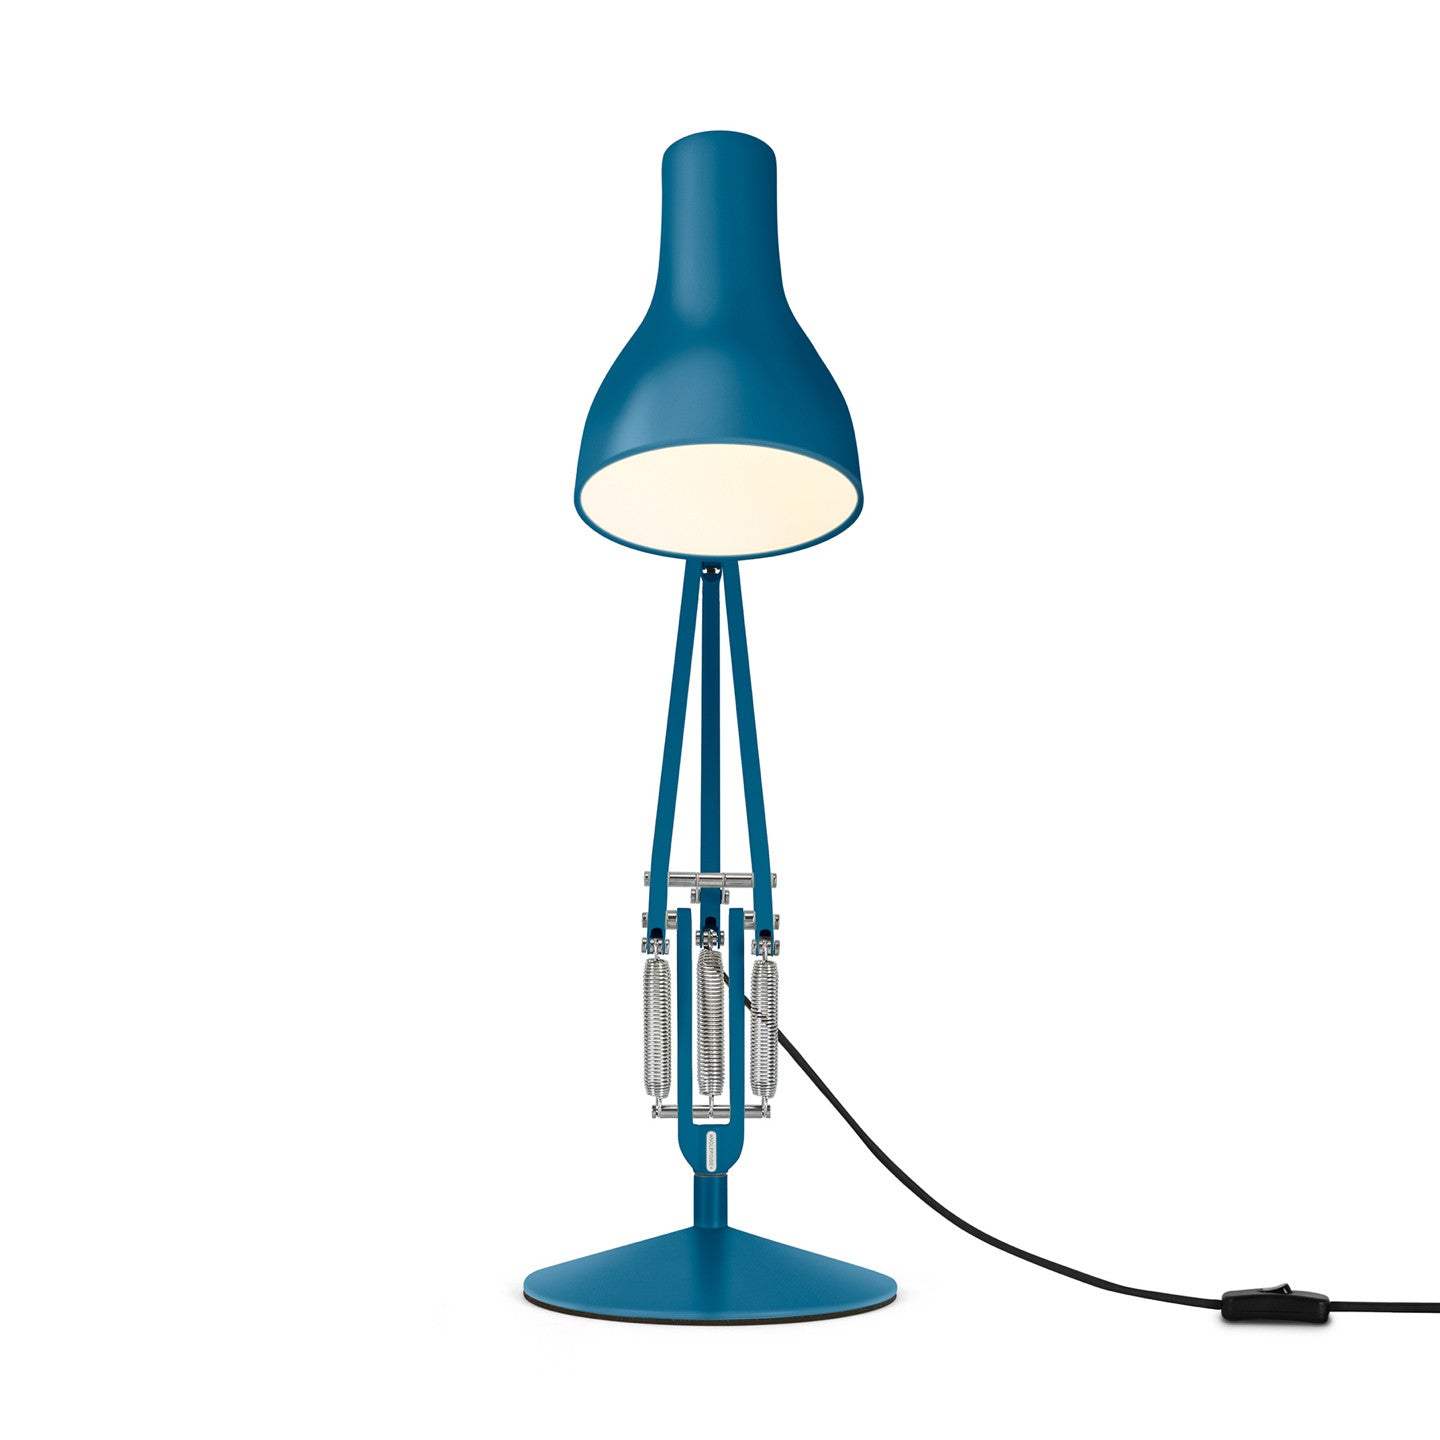 product designer beaney anglepoise sam lamp booklet rw